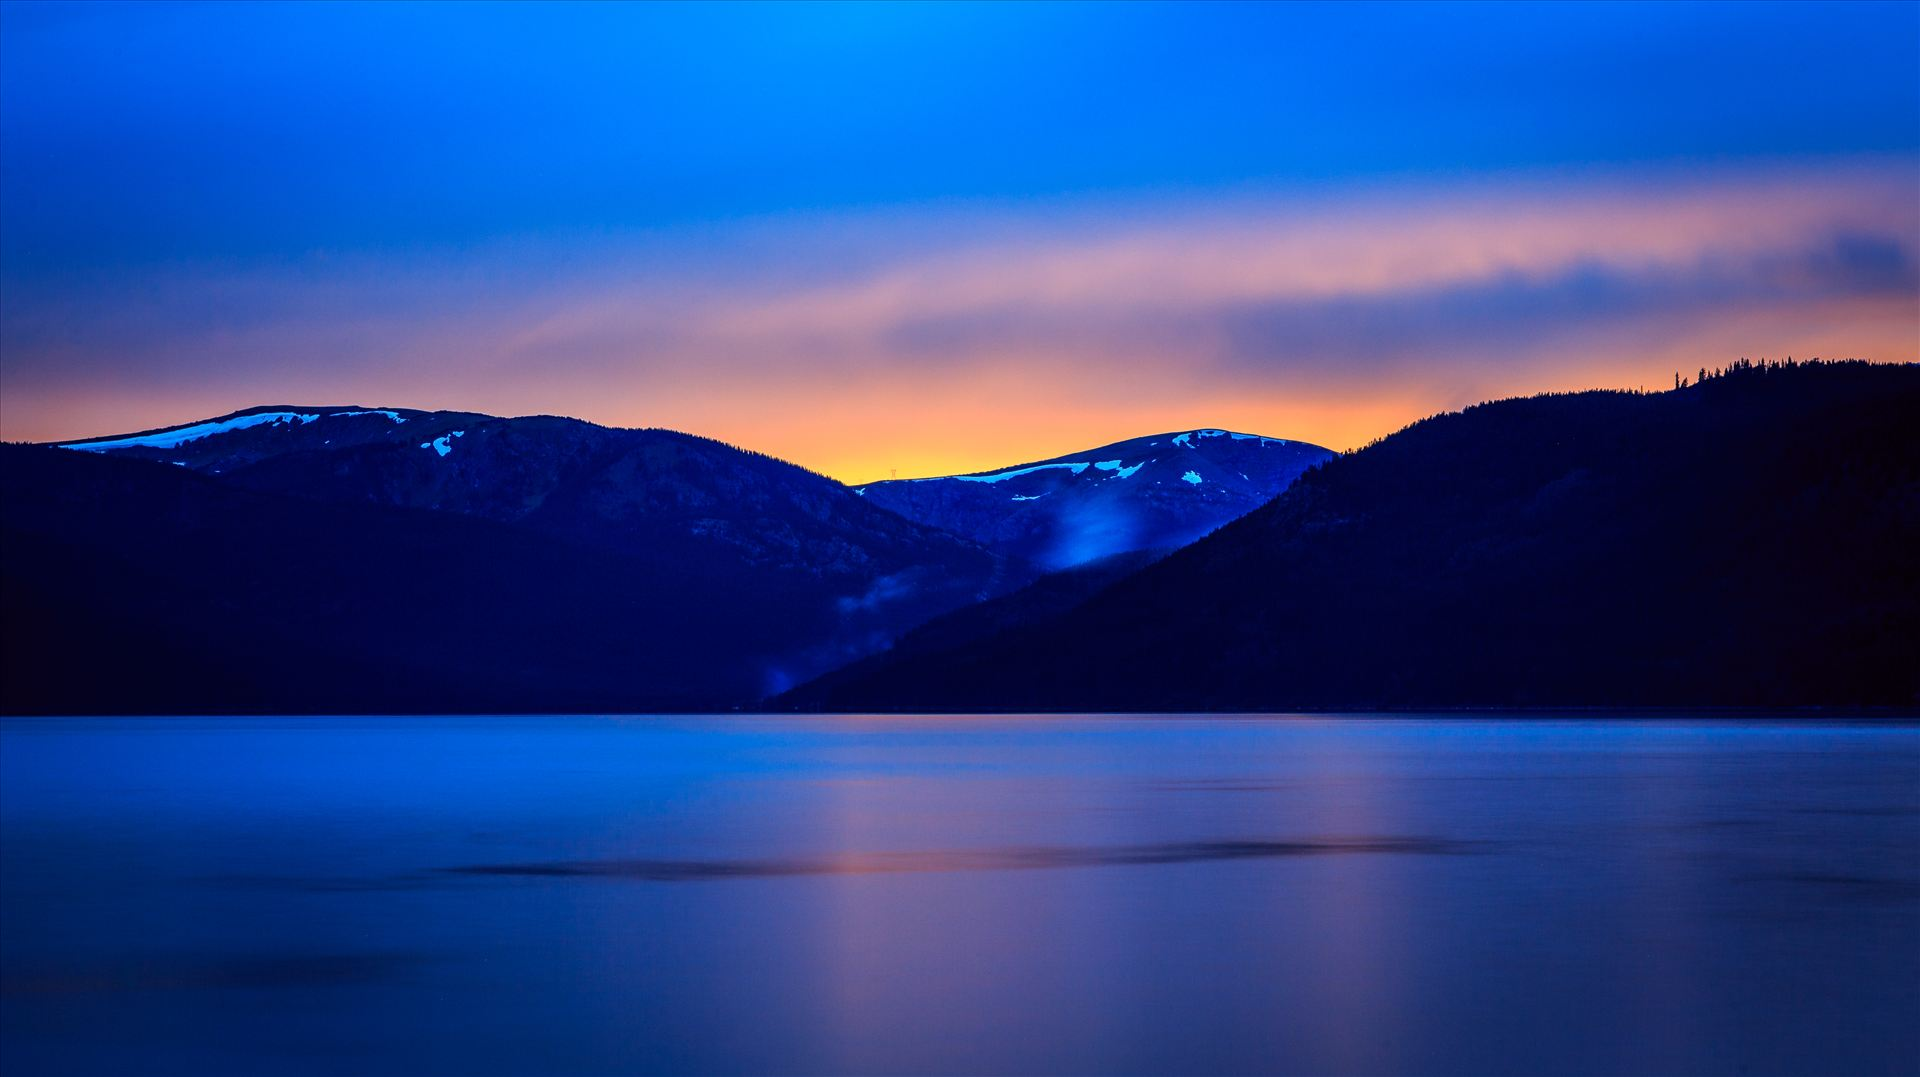 Sunset on Turquoise I - Sunset on the calm protected waters of Turqouise Lake, Leadville Colorado. by D Scott Smith